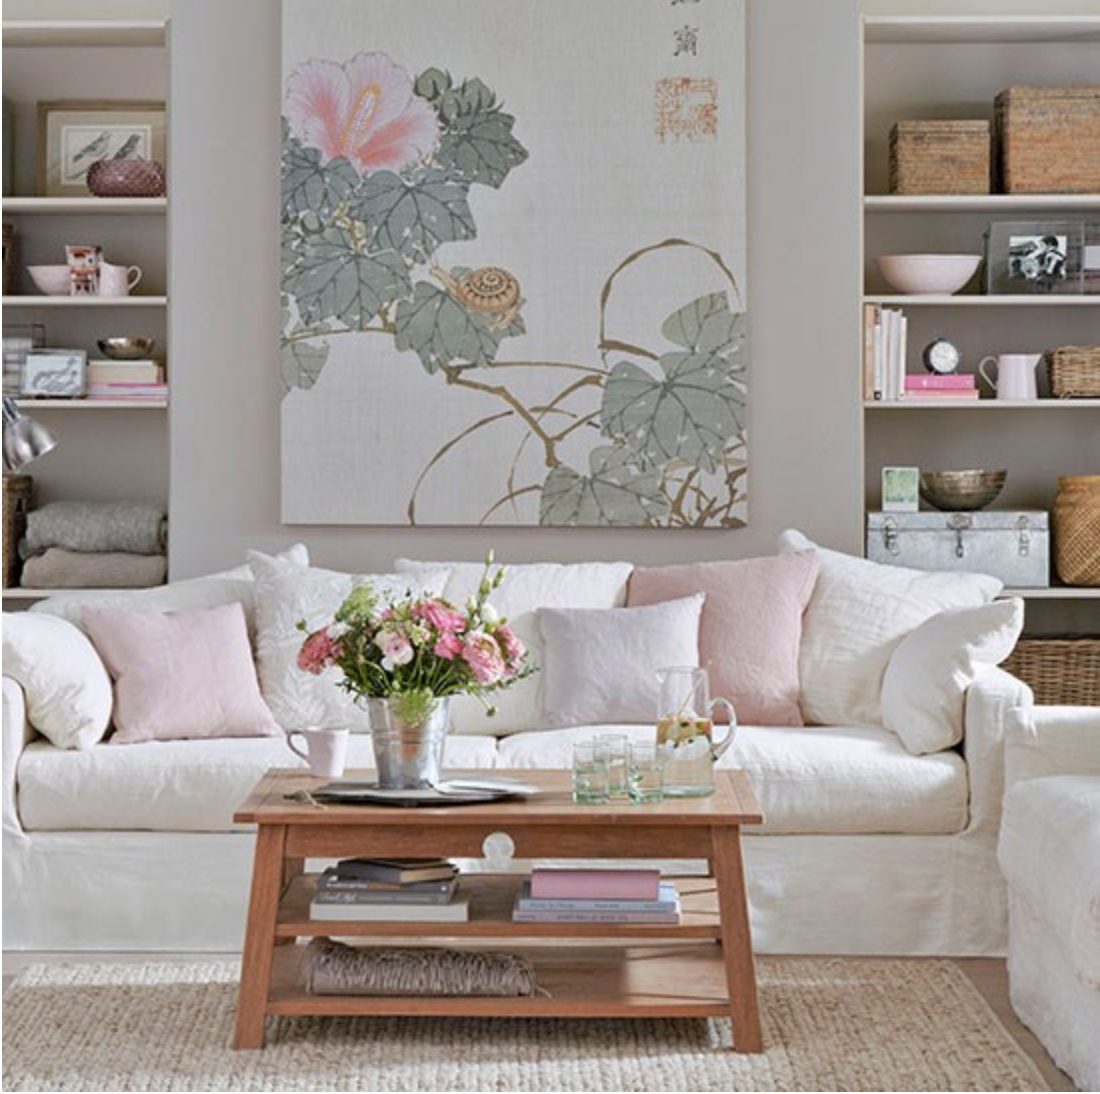 Salas pequenas romanticas e muito charmosas decorandoonline for Front room decorating designs